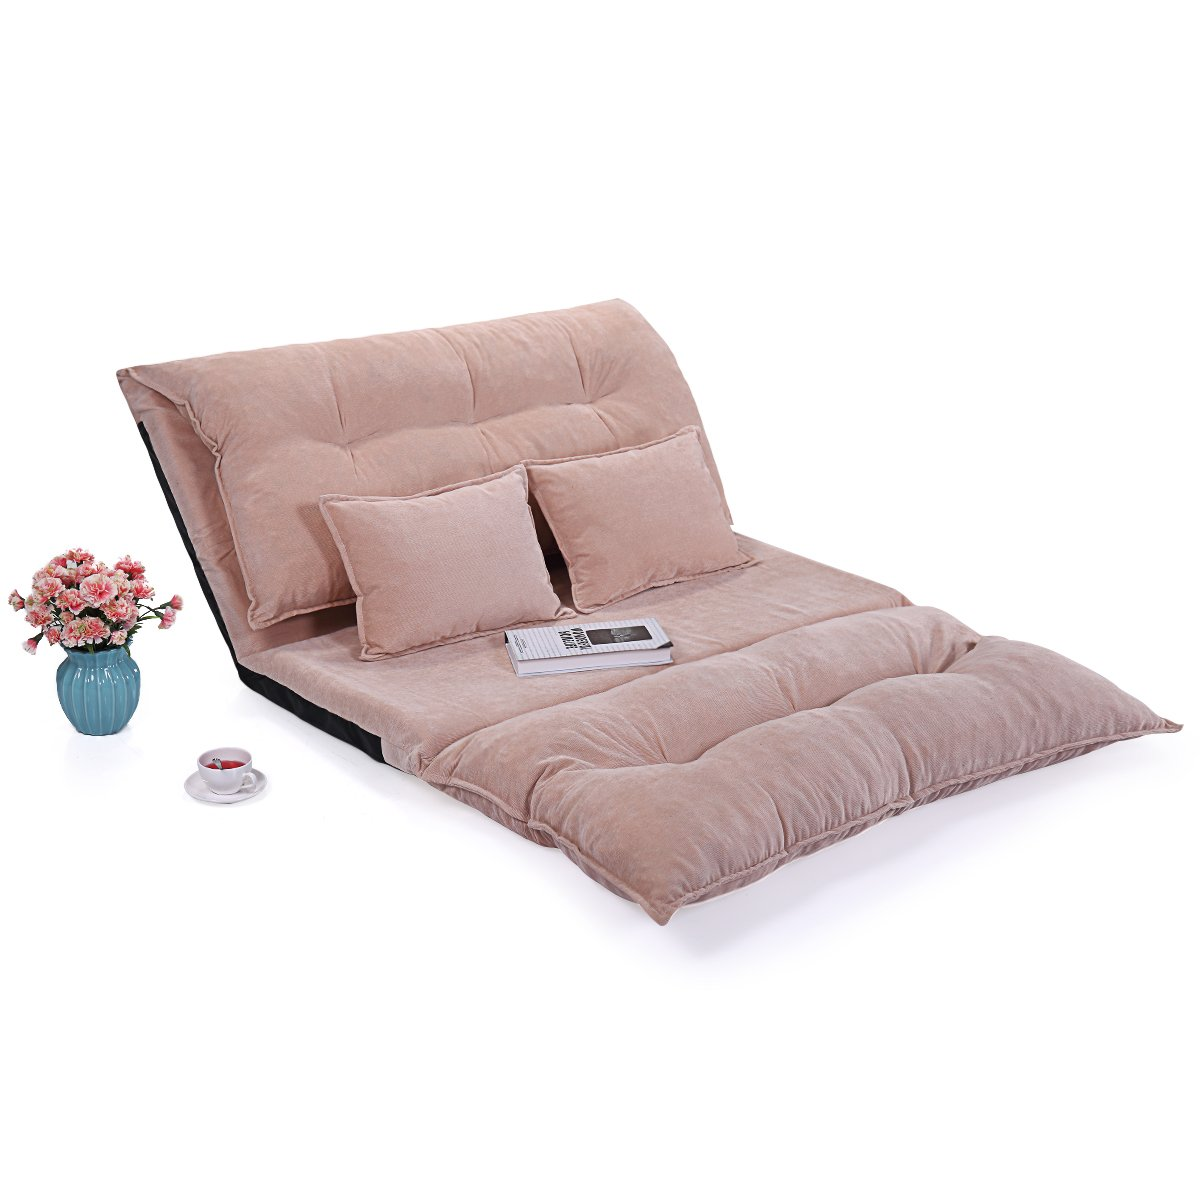 Tobbi Foldable Corduroy Leisure Sofa Bed Video Game Sofa with Two Pillows, light coffee by Tobbi